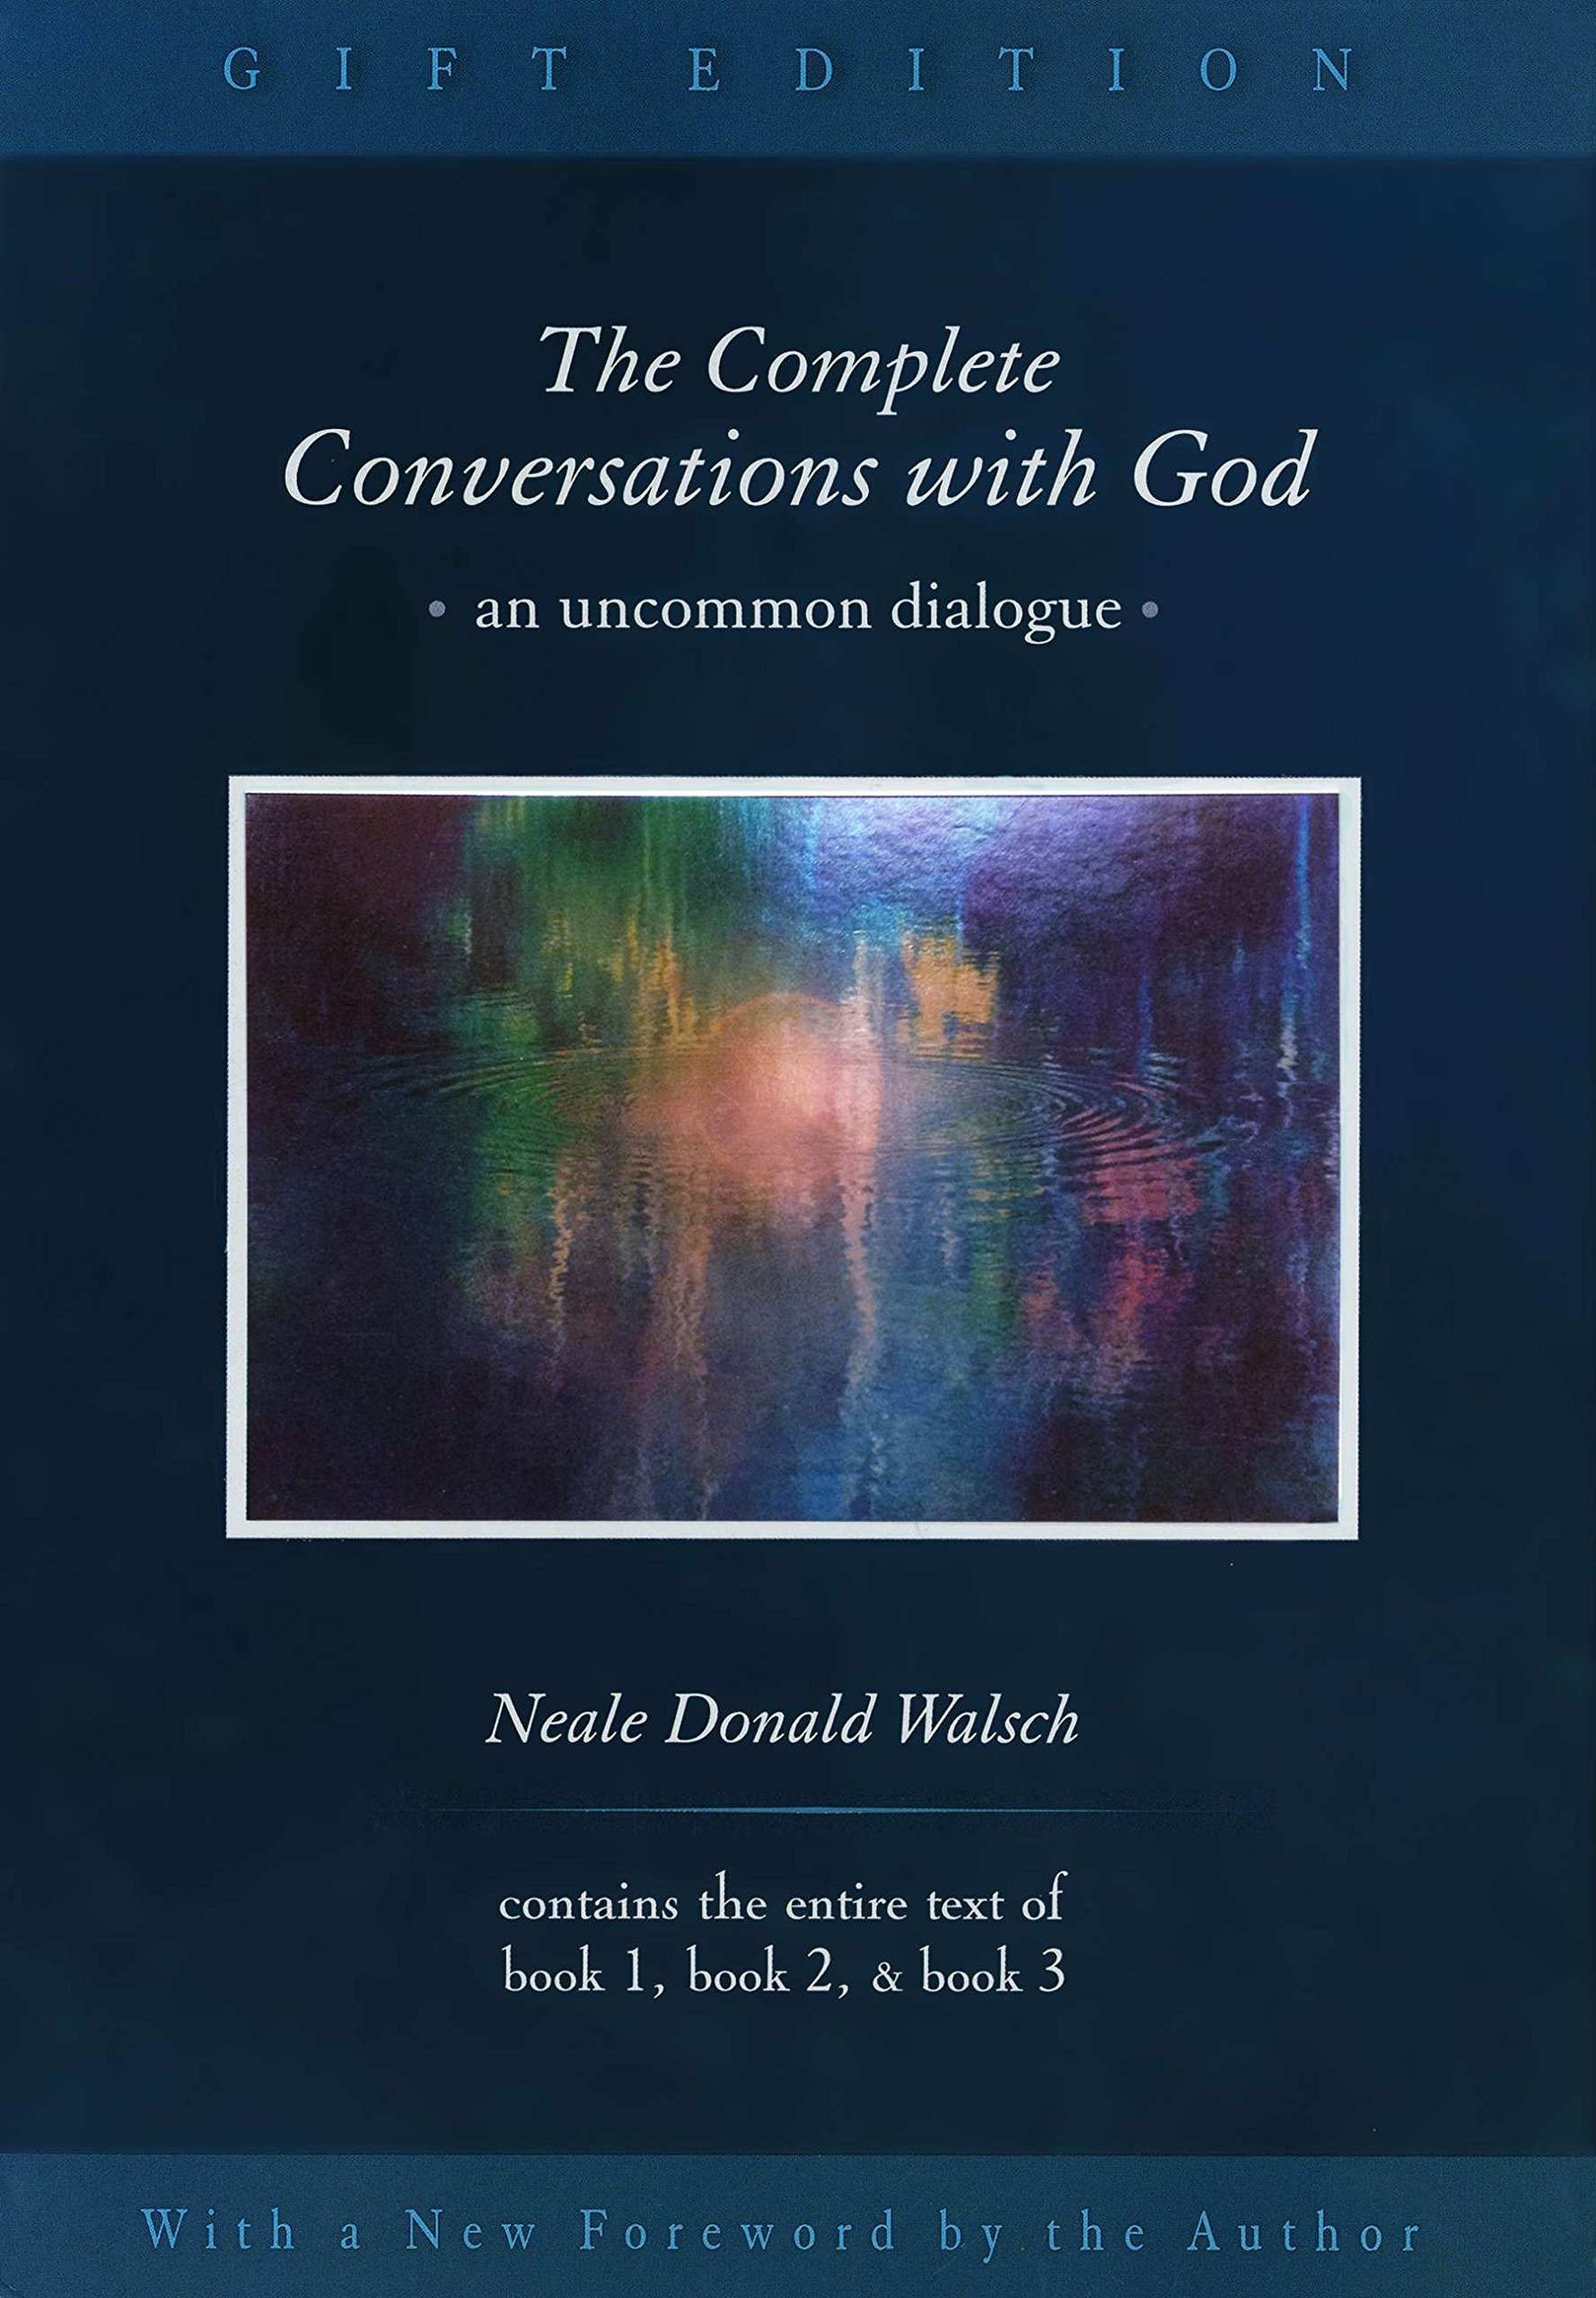 Book 1 neale with god donald conversations walsch